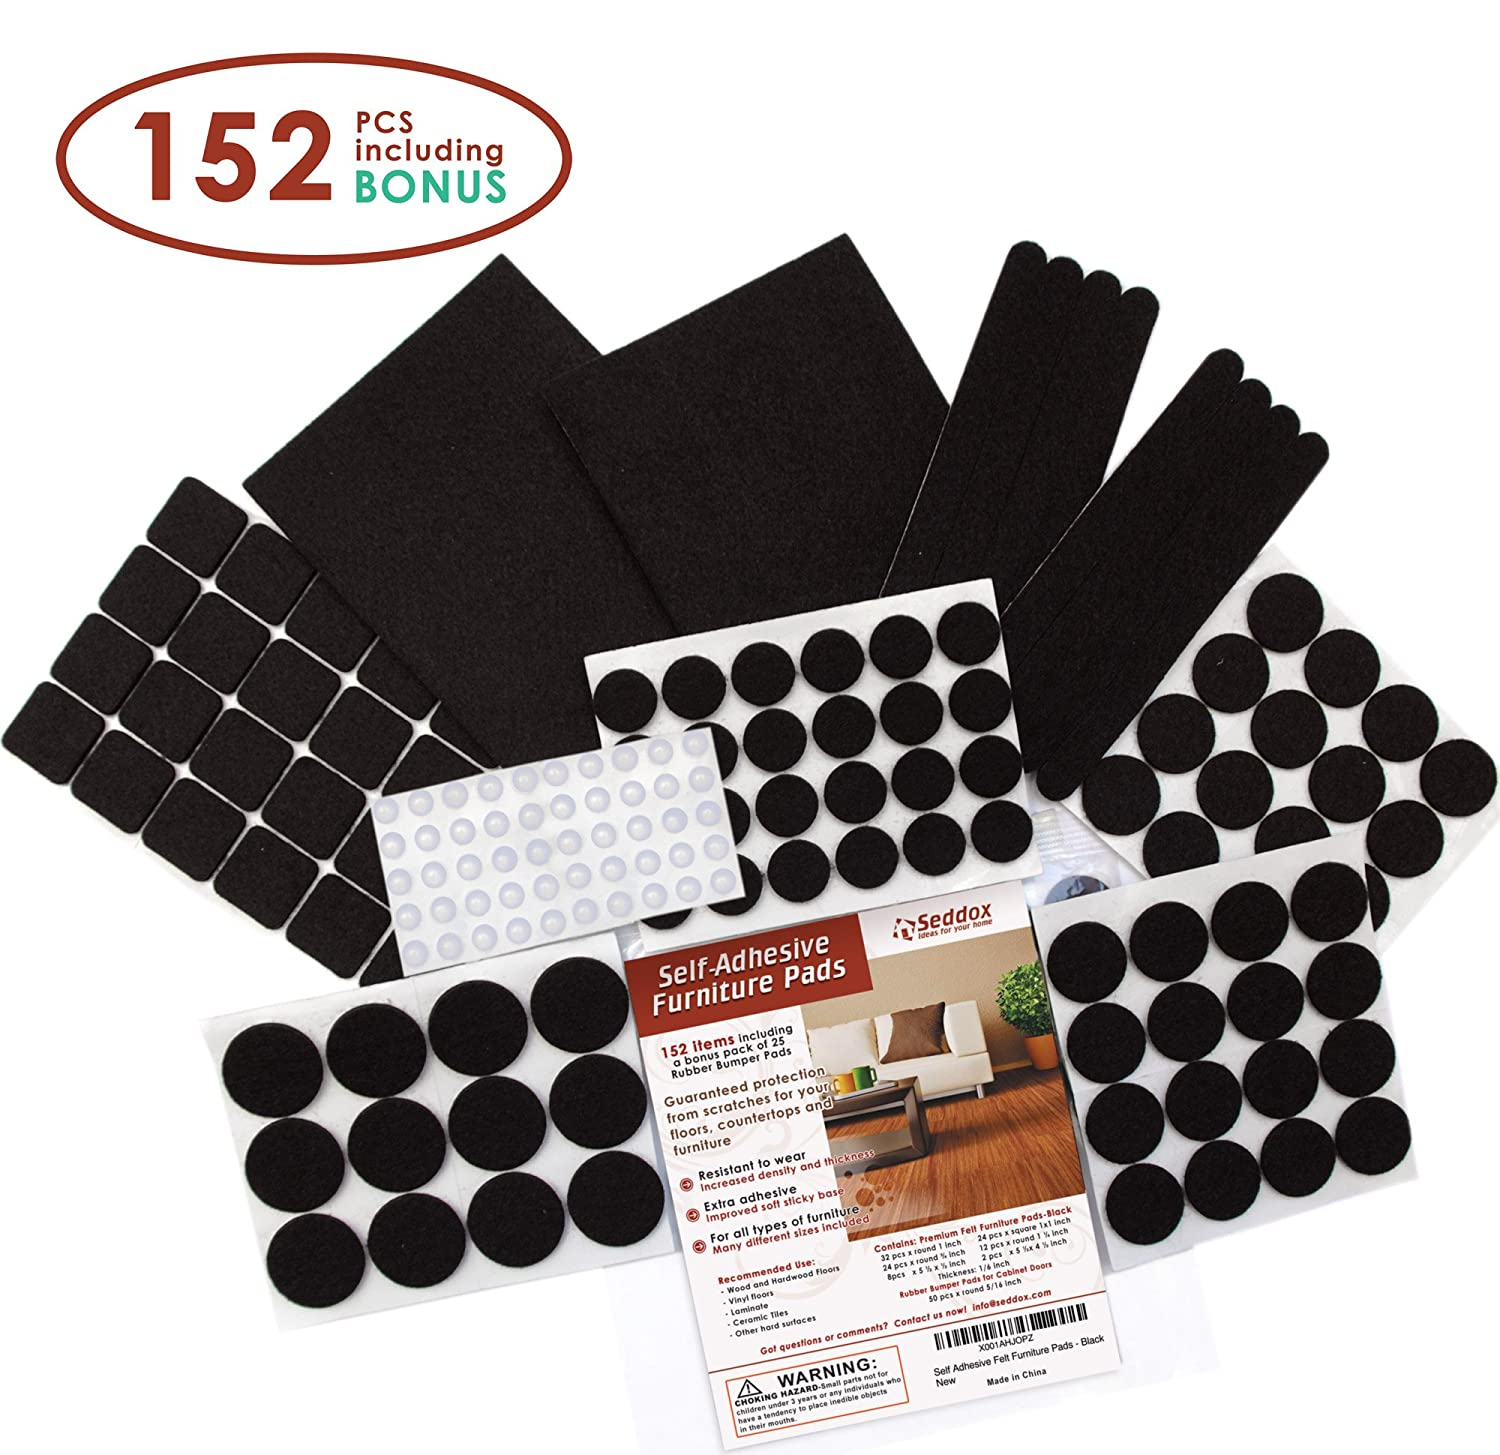 Superior Premium Felt Furniture Pads Set   152 Pieces Including Bonus Rubber Noise  Bumpers   Extra Adhesive Hardwood Floor Protectors, Felt Pads For Chair  Legs ...